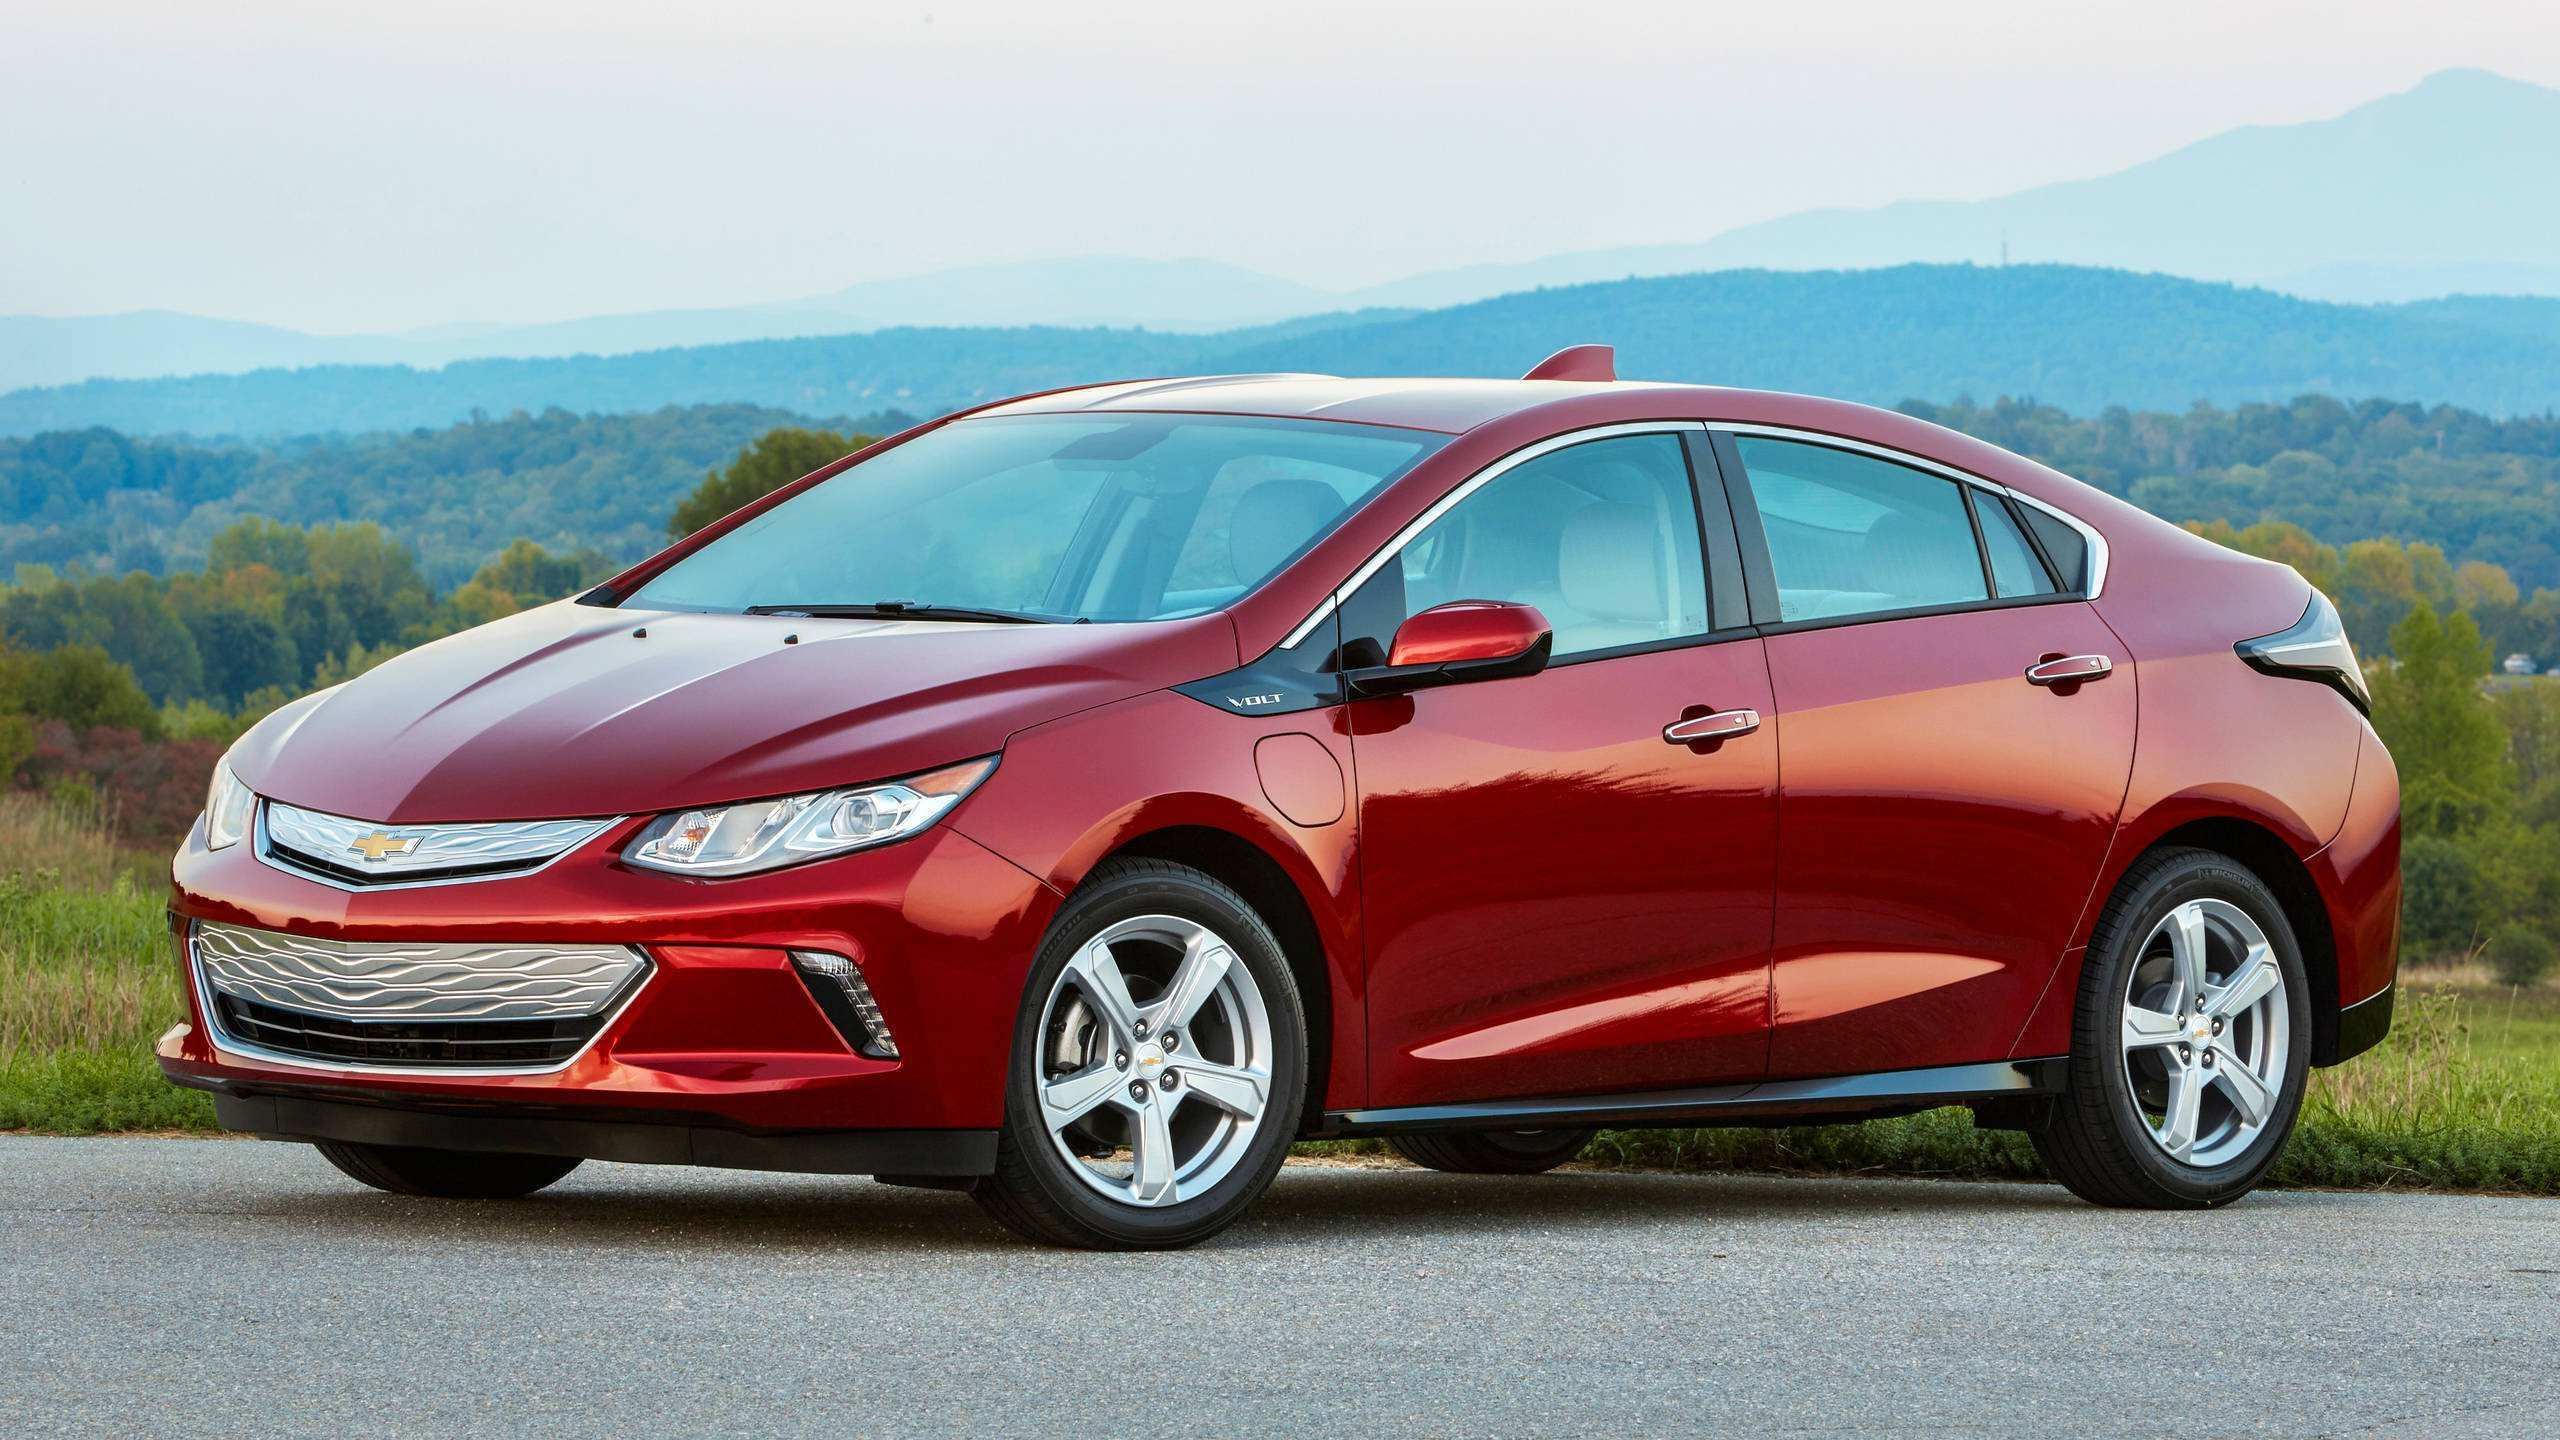 76 All New 2019 Chevrolet Volt Performance